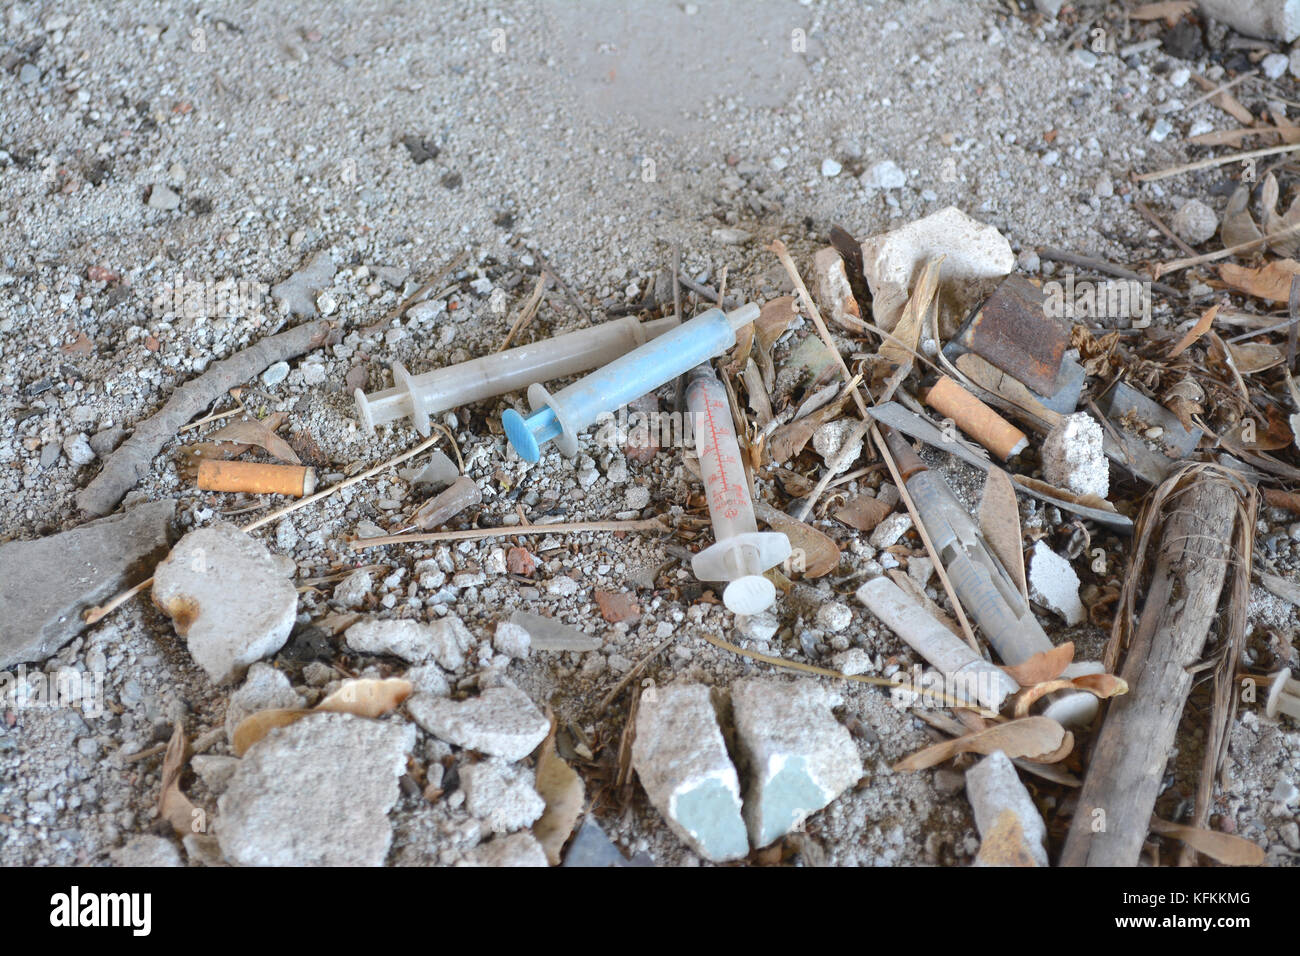 Discarded syringe and on ground used by heroin addict. - Stock Image